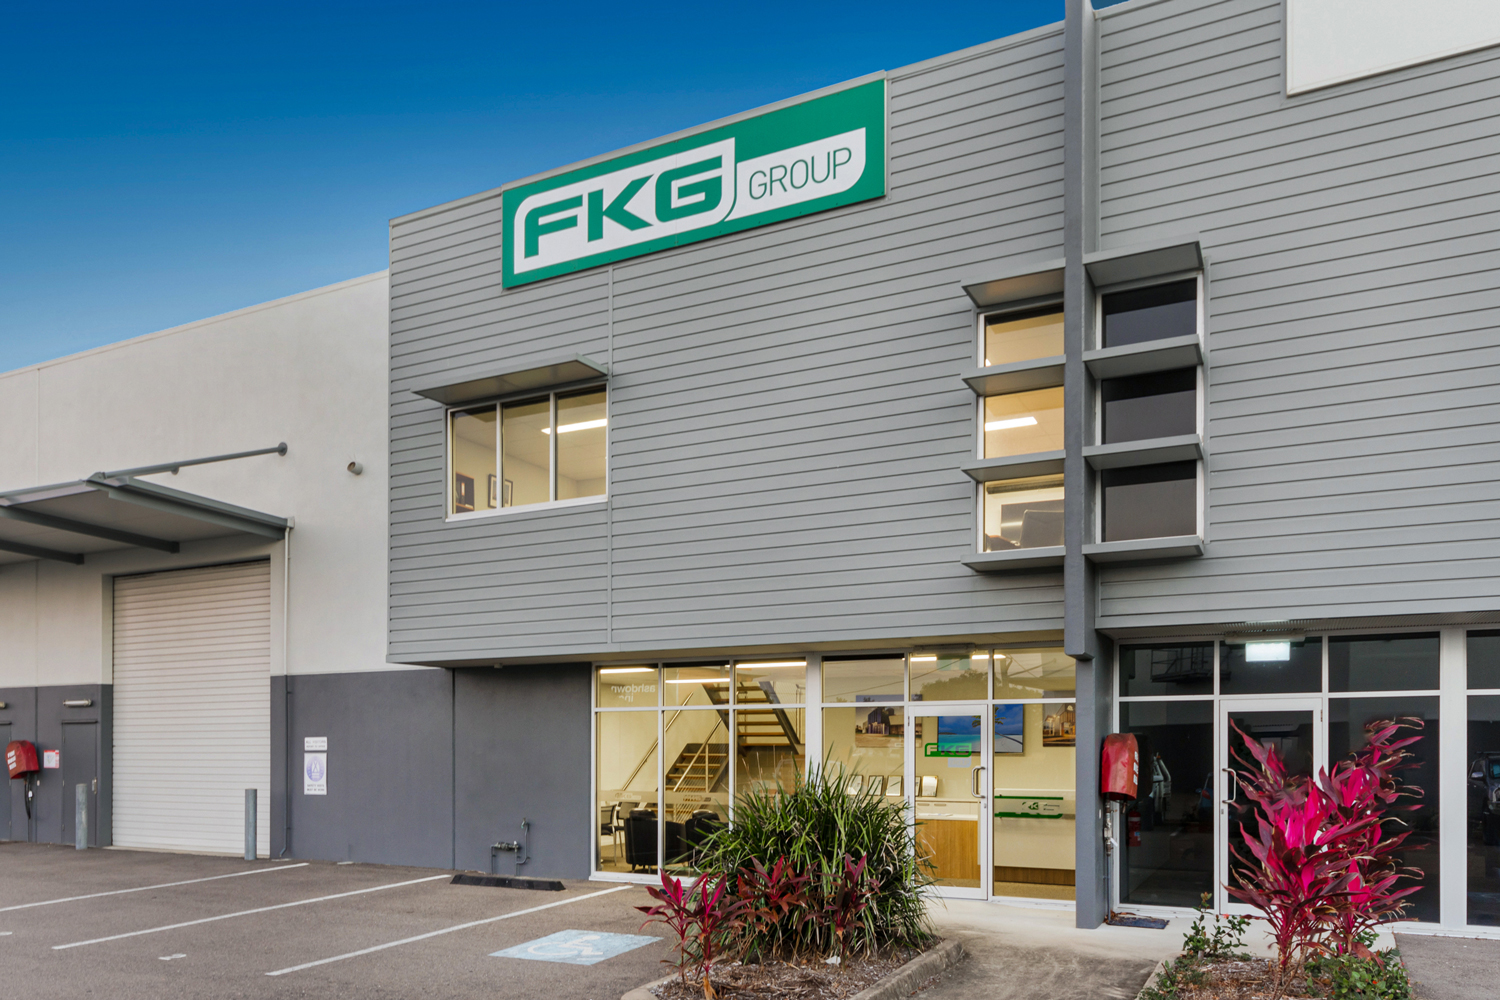 Office Move Boosts Townsville Presence